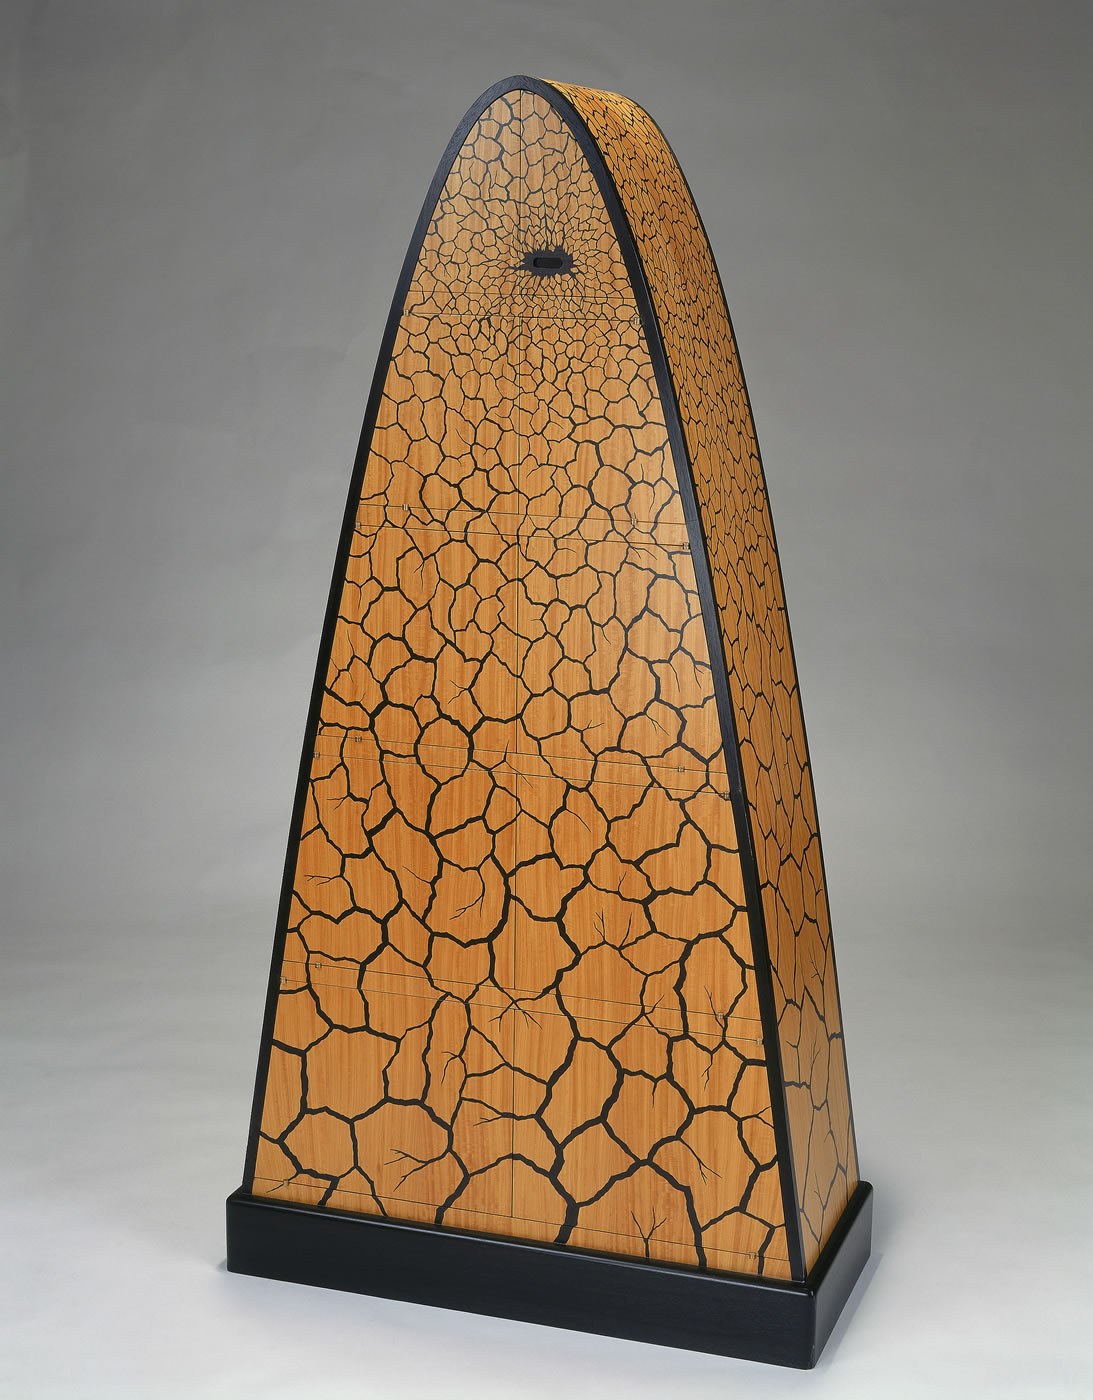 Cabinets  Silas Kopf Woodworking  Inlaid Wood Marquetry